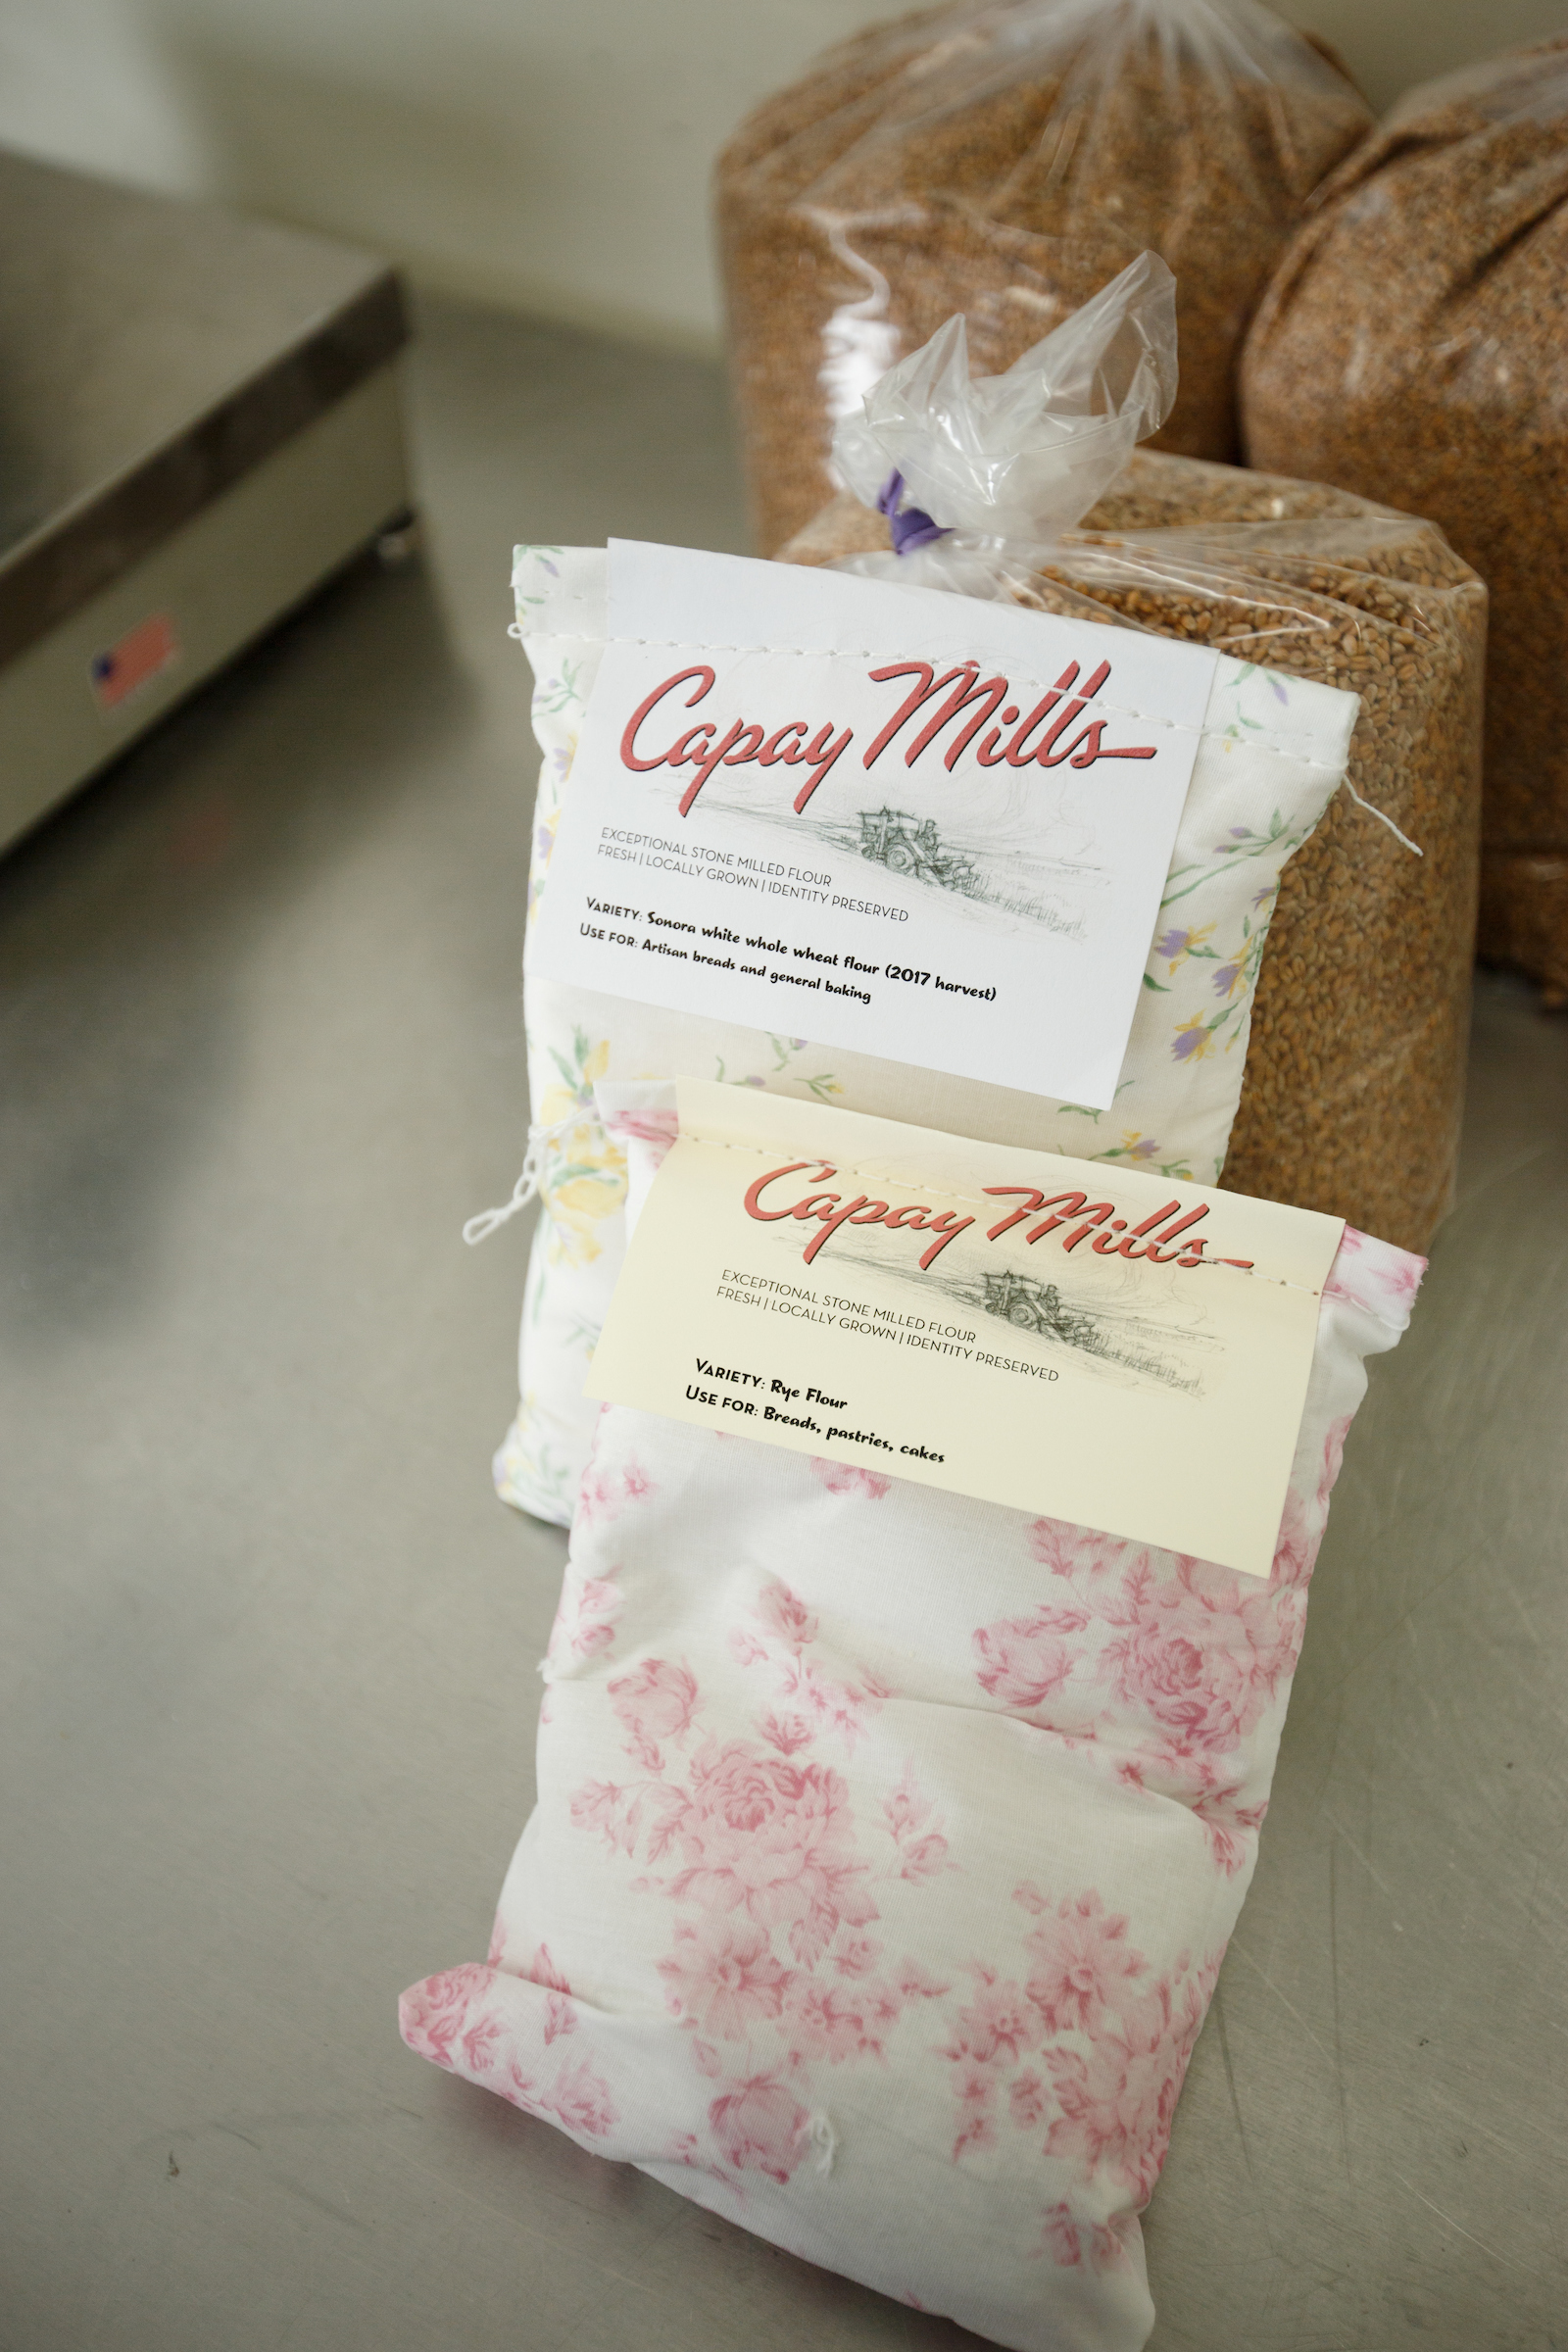 capay mills whole grain flour heritage flour farmers market northern ca